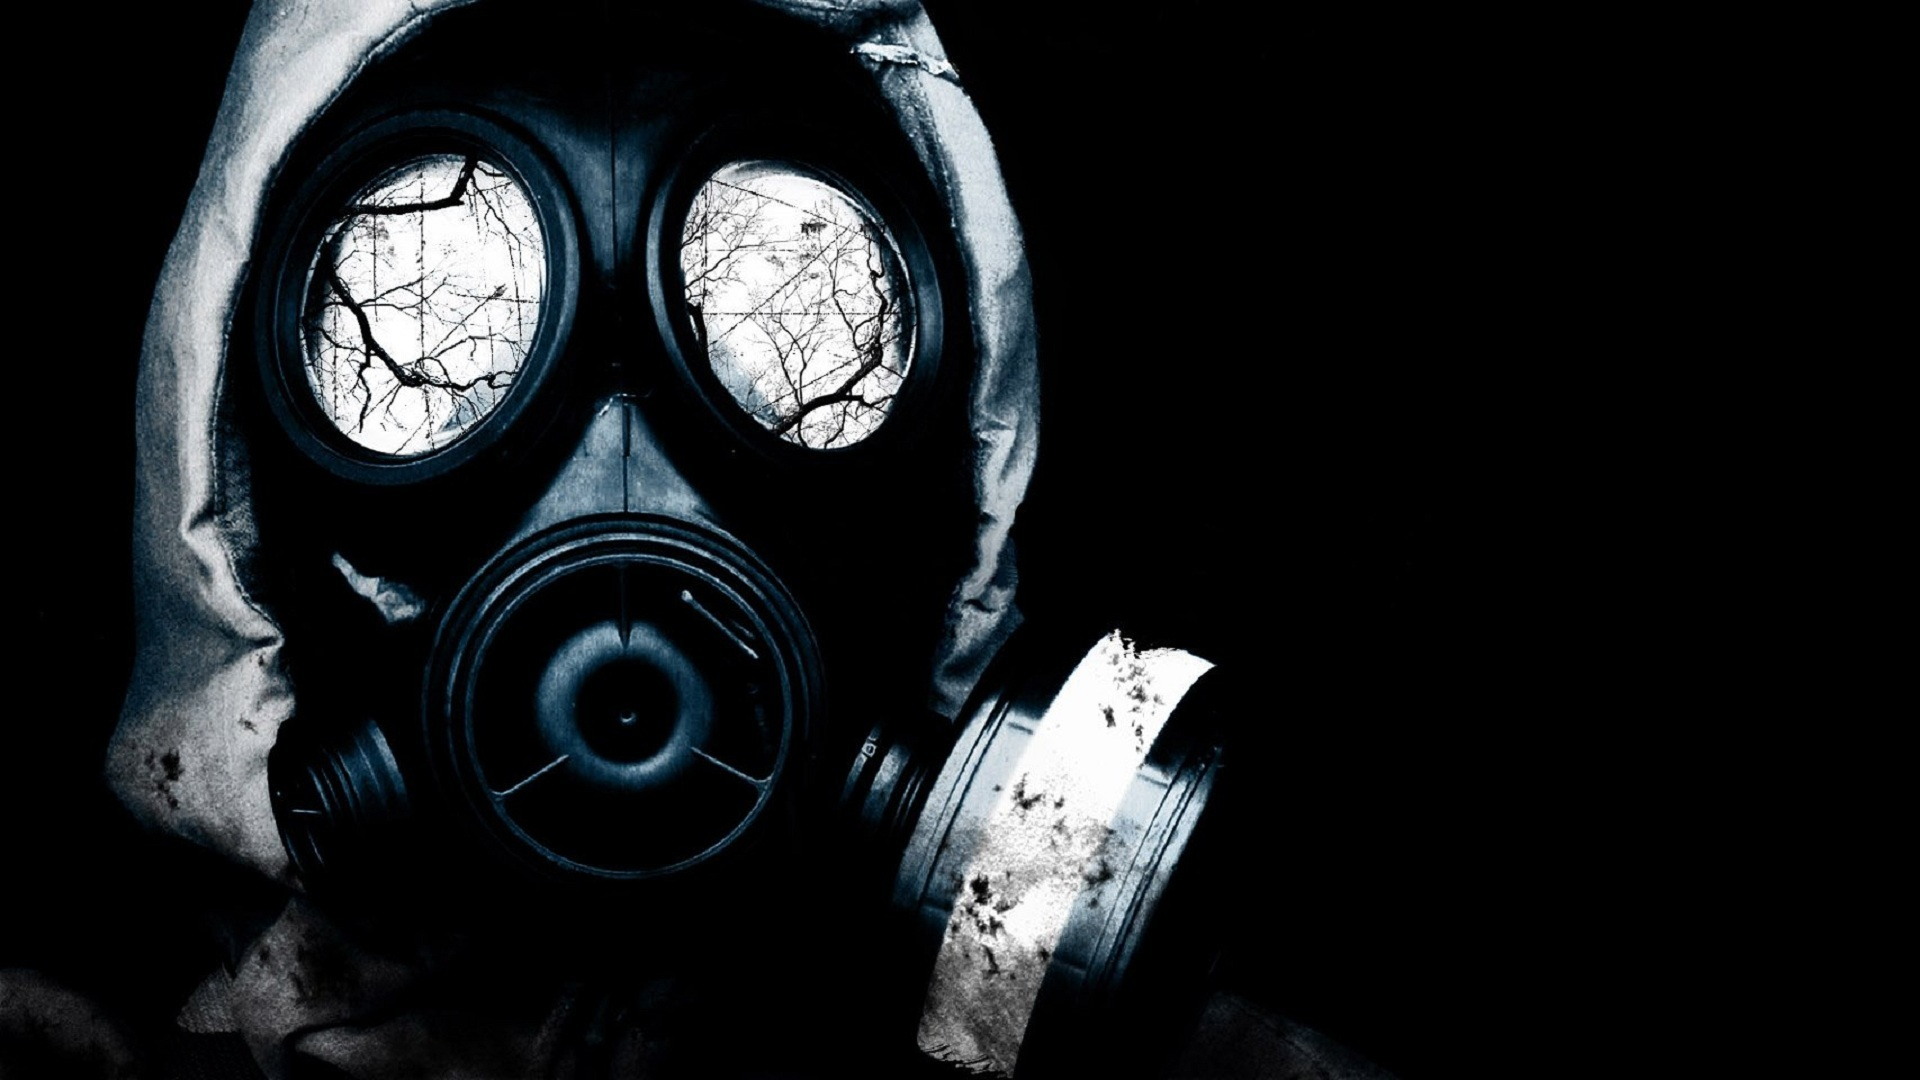 video games S.T.A.L.K.E.R. gas HD Wallpaper